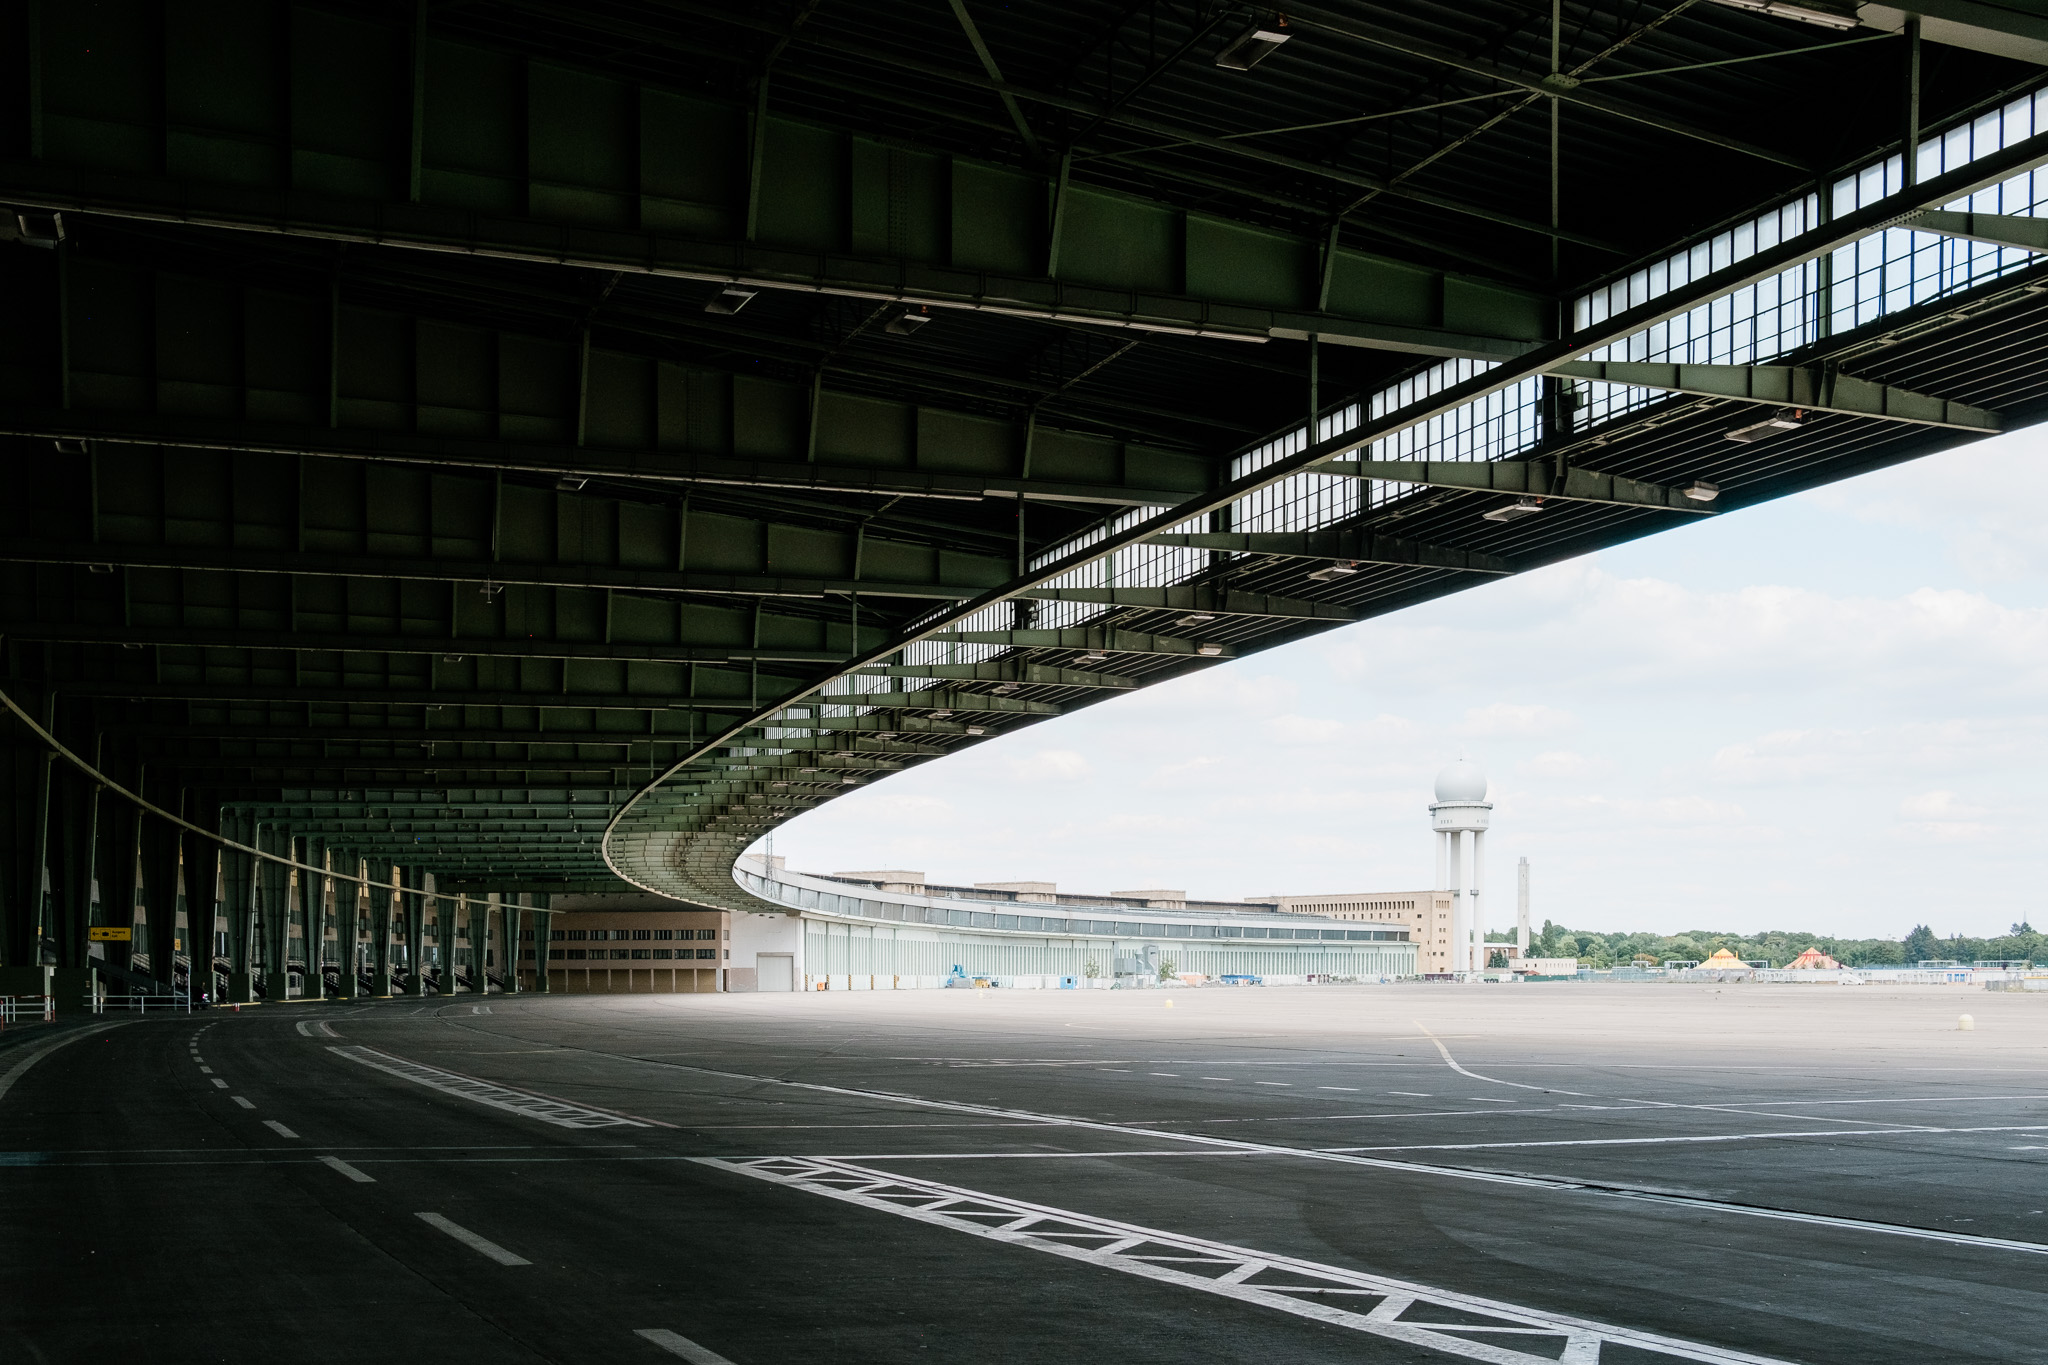 The massive roof allows aircrafts to park underneath and passengers were able to walk to the terminal without getting one's feet wet.